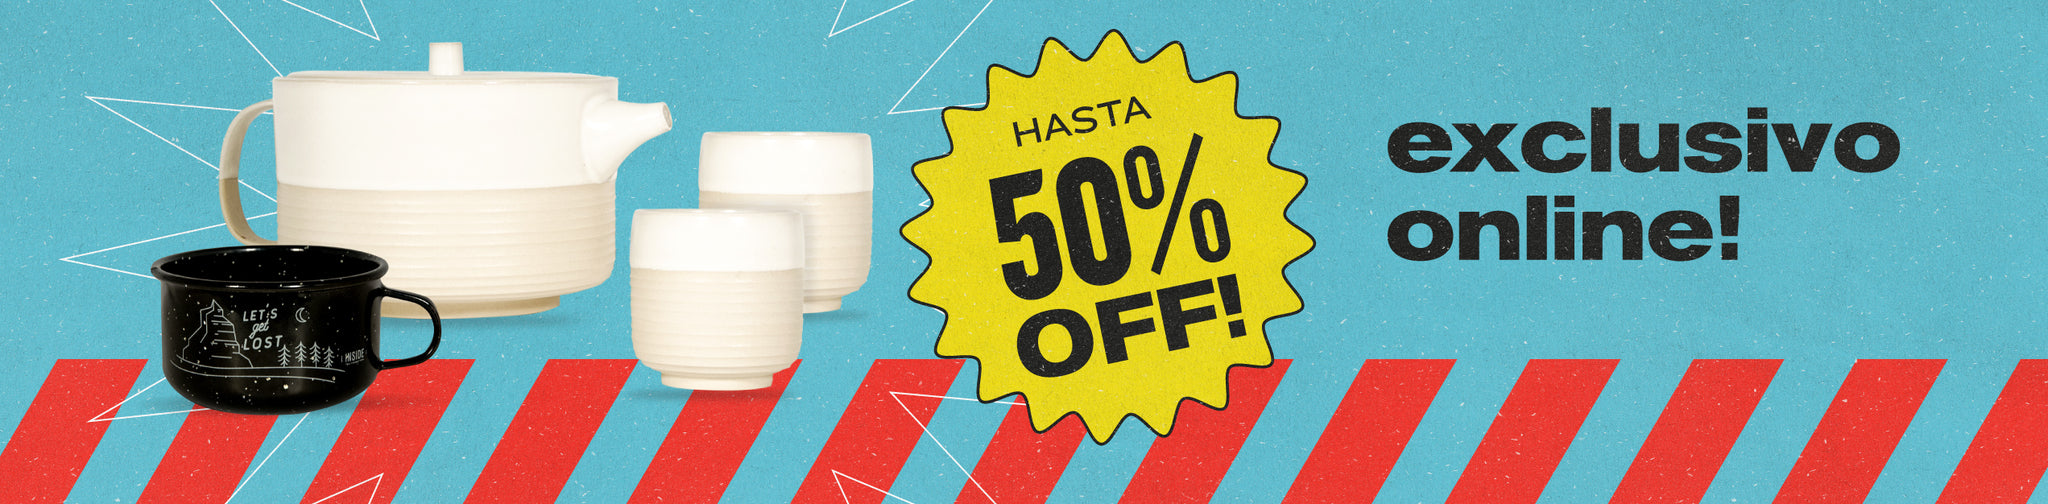 EXCLUSIVO ONLINE - HASTA 50% OFF